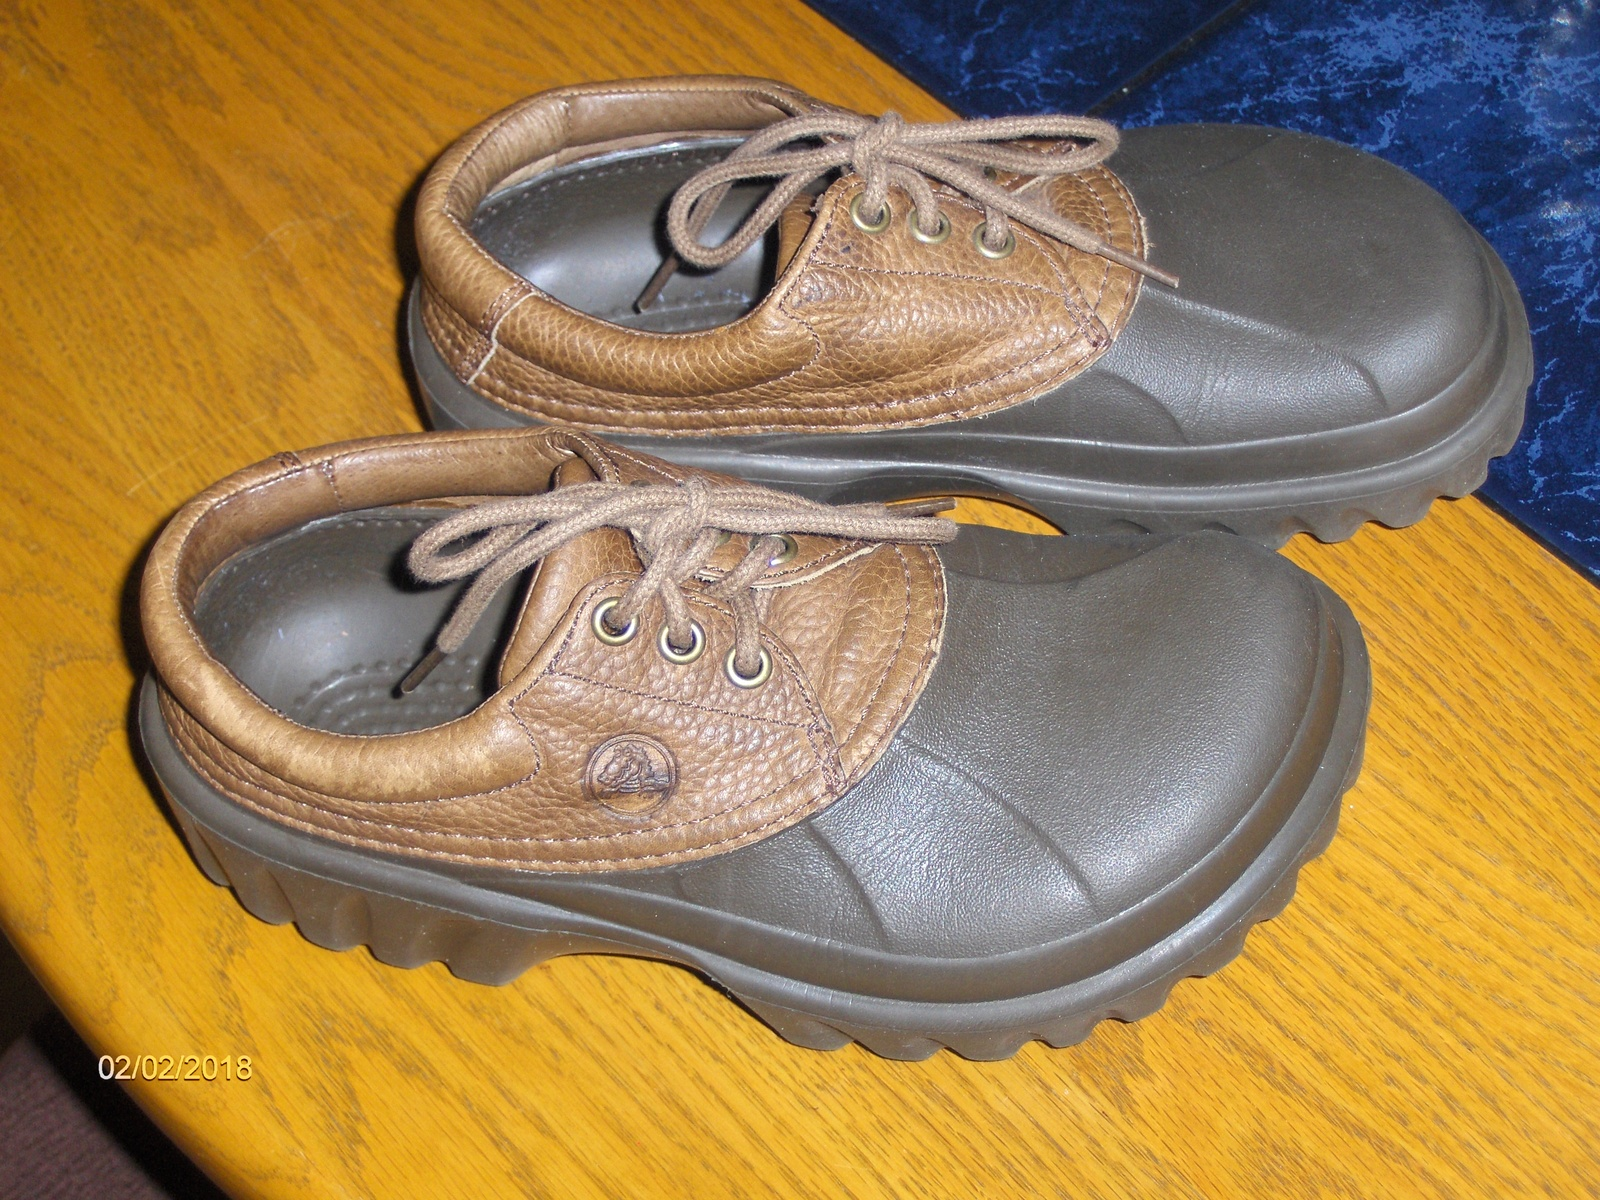 554294e21befee Crocs Axle All Terrain Duck Islander Boat Shoes Brown Leather Upper Womens  W8 M6